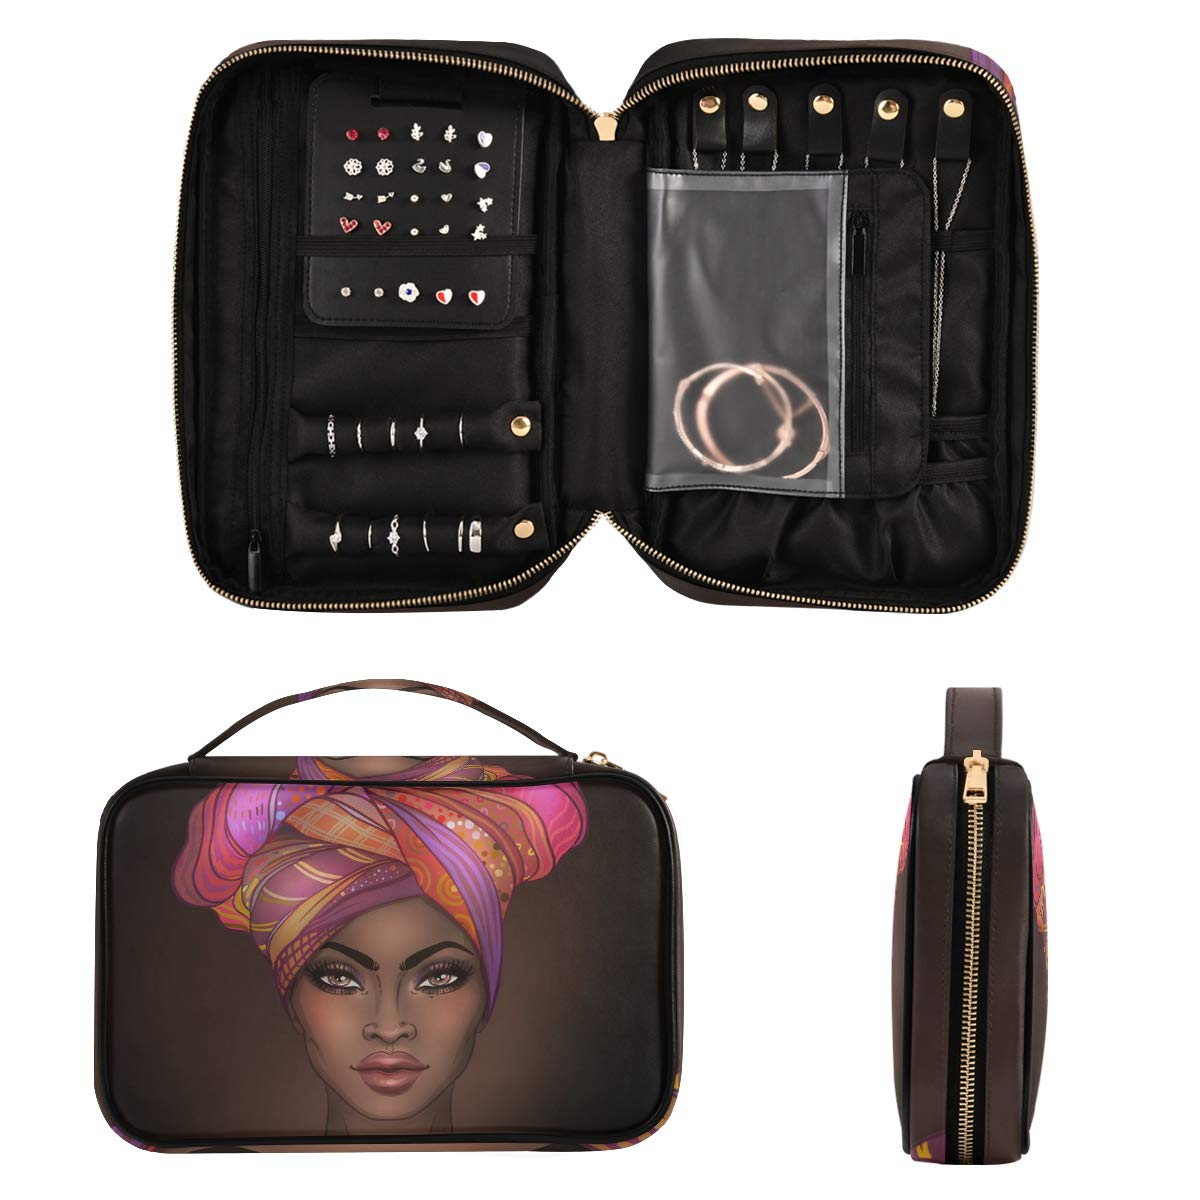 Jewelry Organizer Bag Travel Jewelry Storage Cases for Necklace, Earrings, Rings, Bracelet,African American Gir(a)